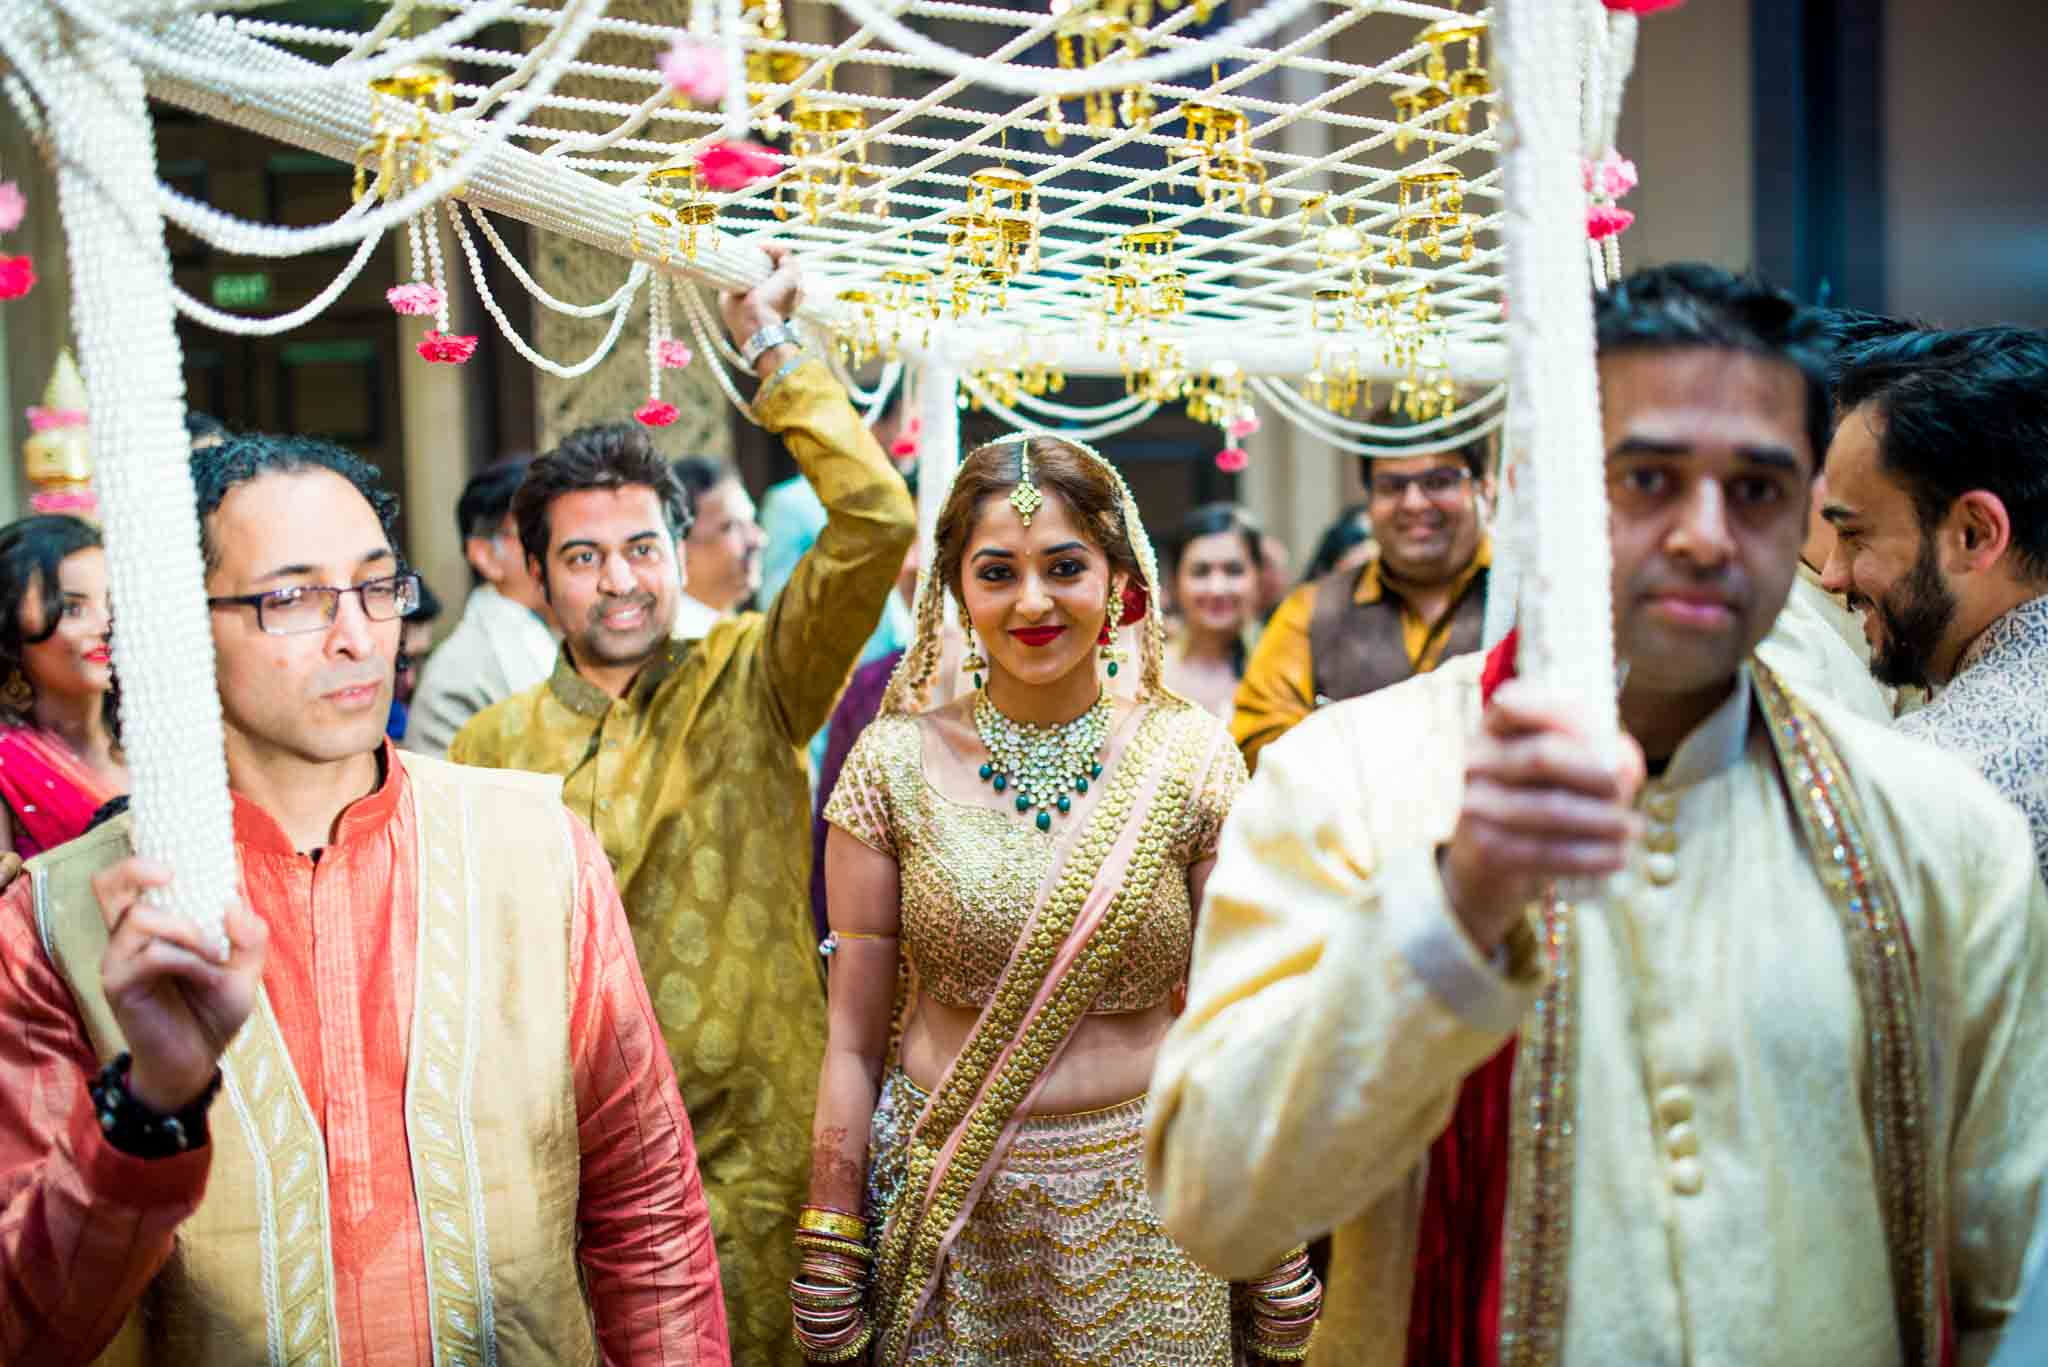 StRegis-Palladium-Mumbai-Candid-Wedding-Photography-28